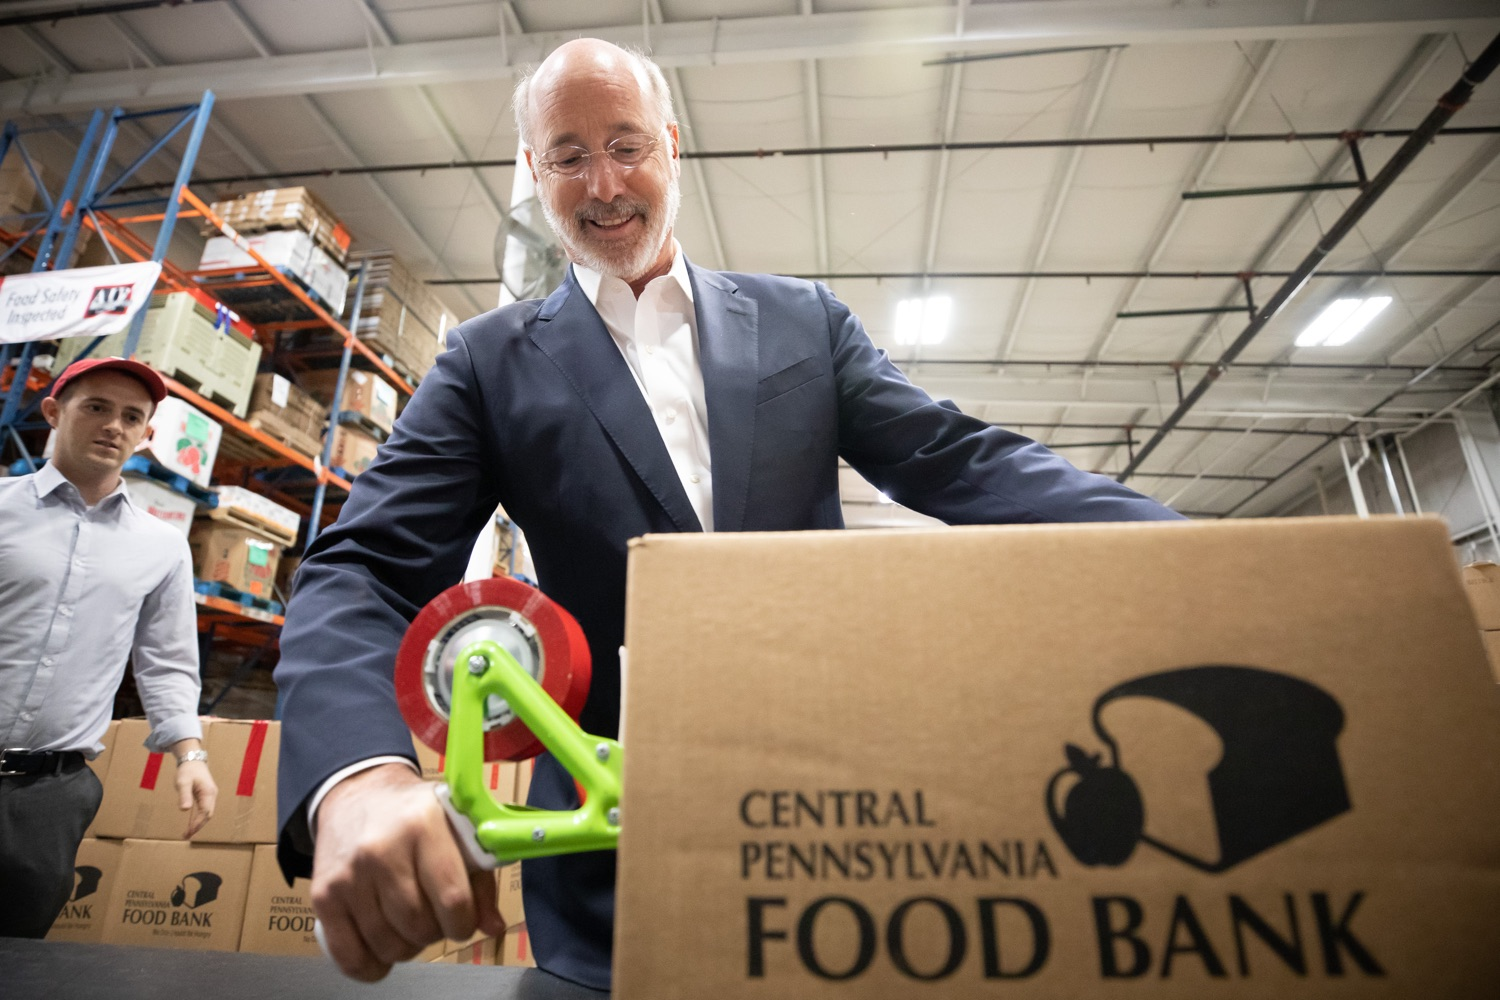 "<a href=""http://filesource.abacast.com/commonwealthofpa/photo/17632_gov_foodbank_volunteering_dz_001.jpg"" target=""_blank"">⇣ Download Photo<br></a>Governor Tom Wolf loading boxes of food at the Central Pennsylvania Food Bank.  The governor and first lady visit the Central Pennsylvania Food Bank in Harrisburg to participate in a volunteer project, packing boxes of food for veterans and their families. Ahead of Thanksgiving and the holiday season, Governor Tom Wolf and First Lady Frances Wolf are reminding Pennsylvanians of the importance of helping each other. Harrisburg, PA  Tuesday November 26, 2019"